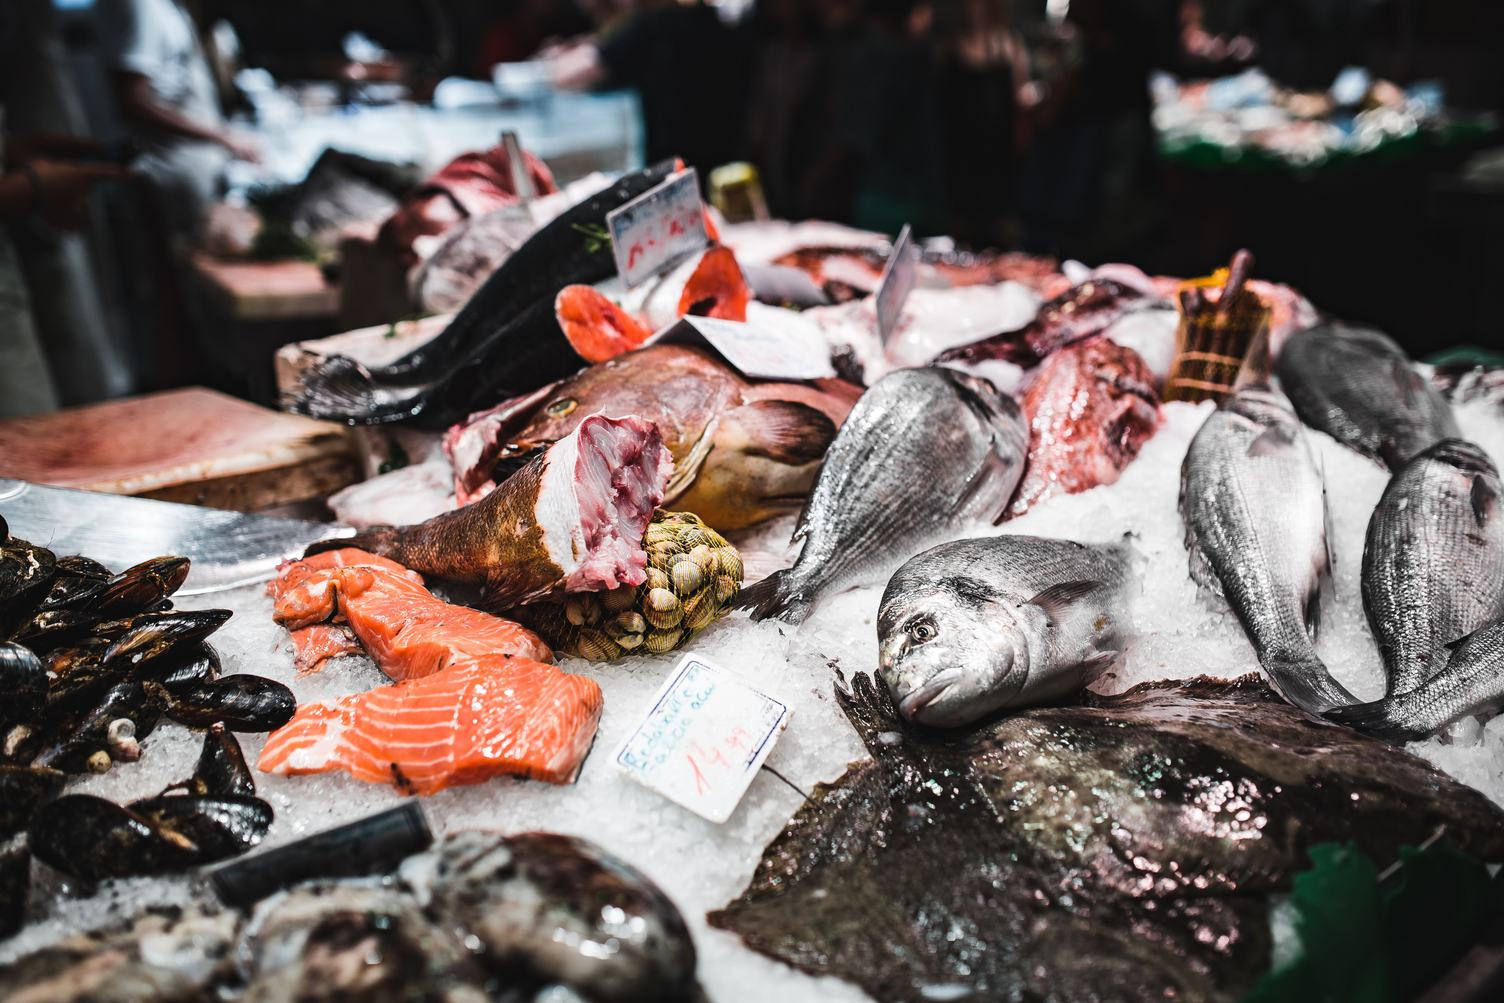 Seafood Market Overview